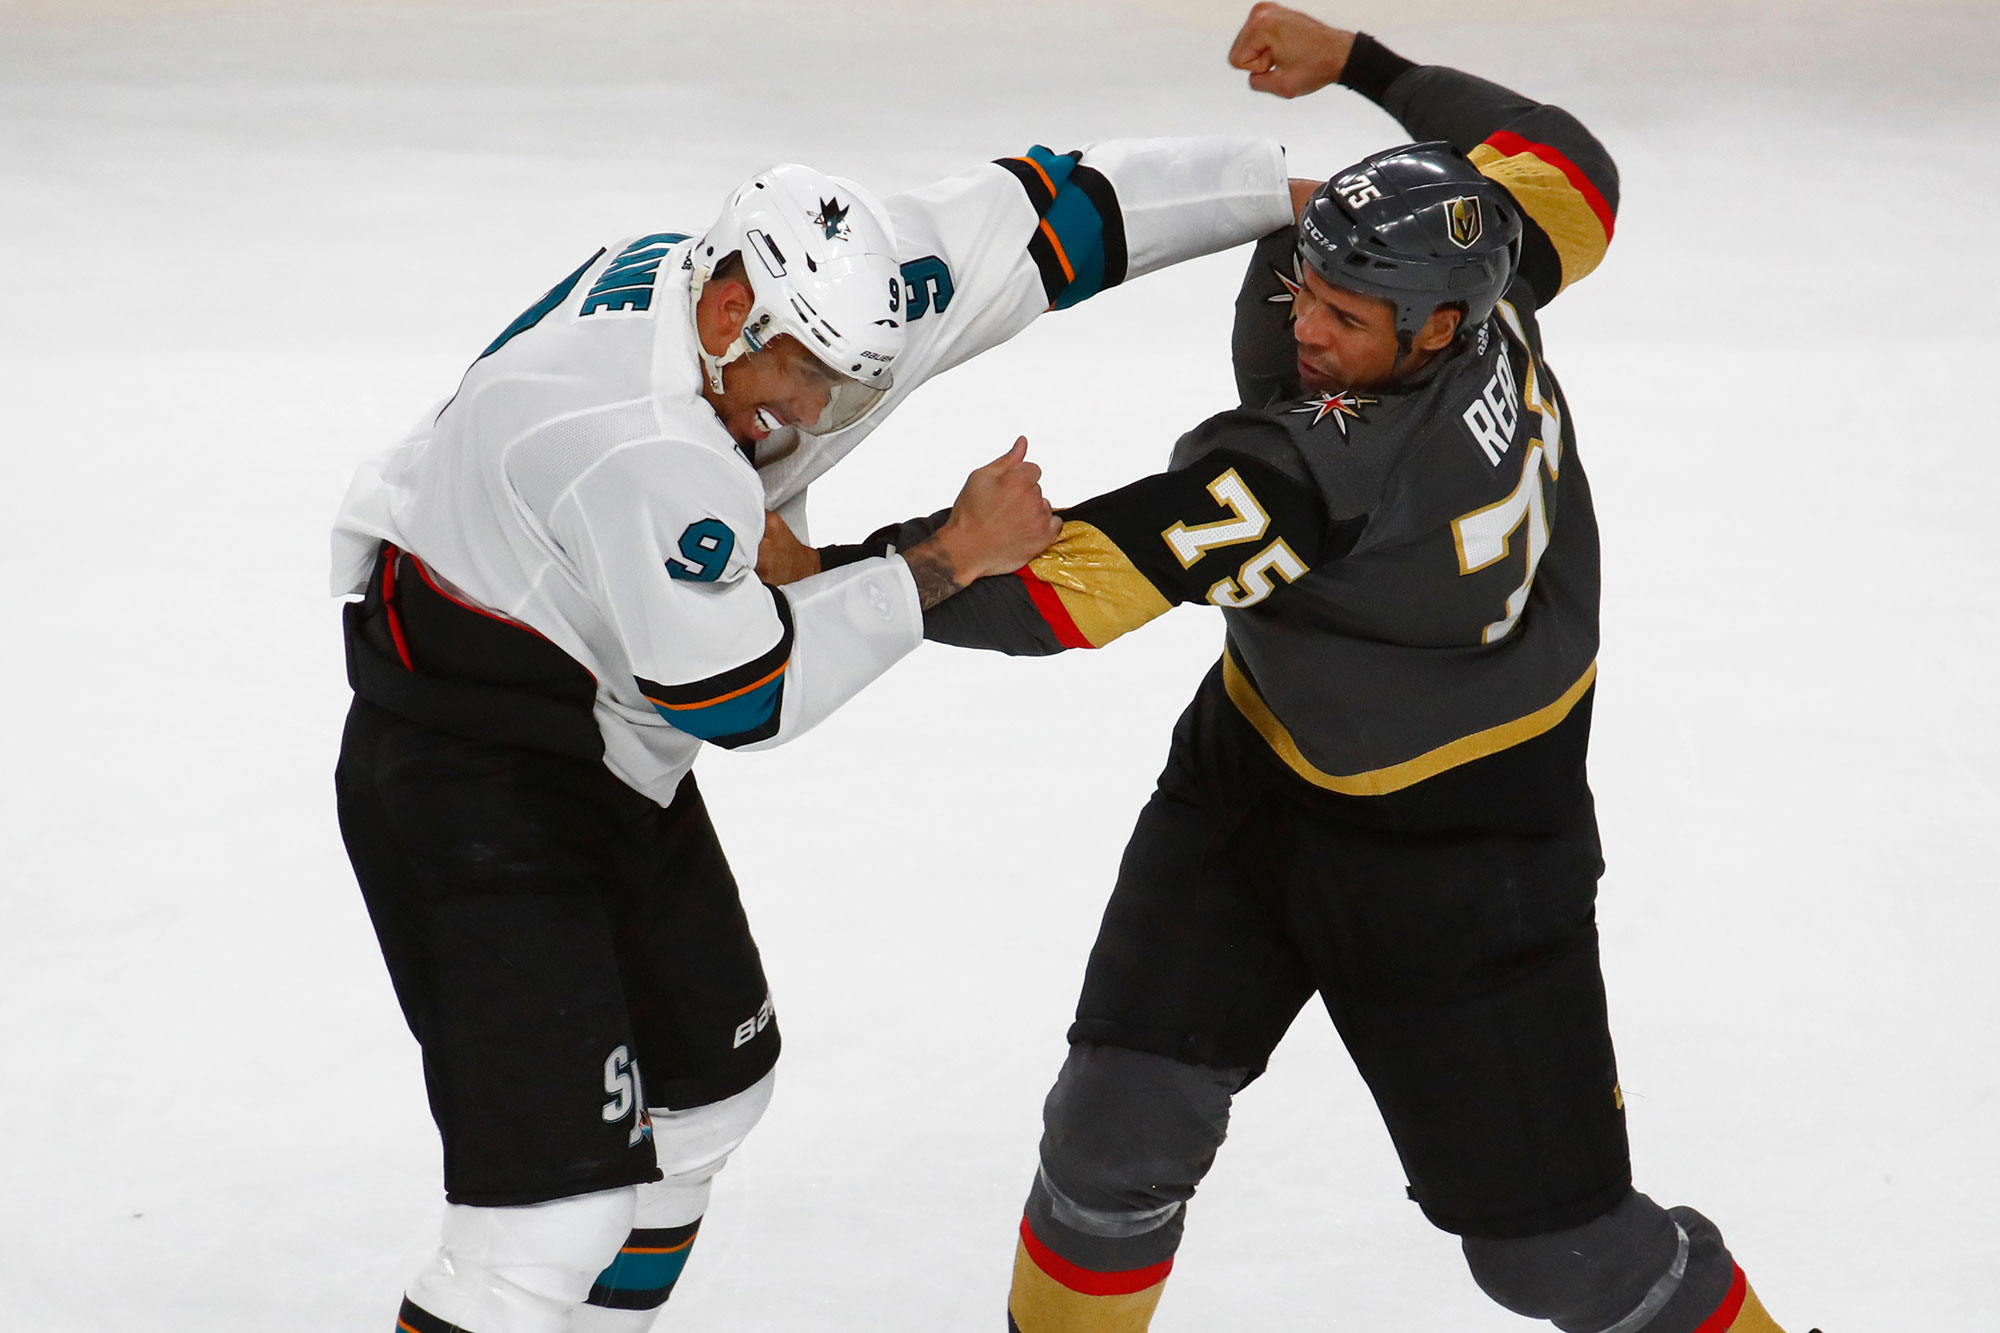 Evander Kane, Ryan Reaves renew beef after Jake Paul challenge